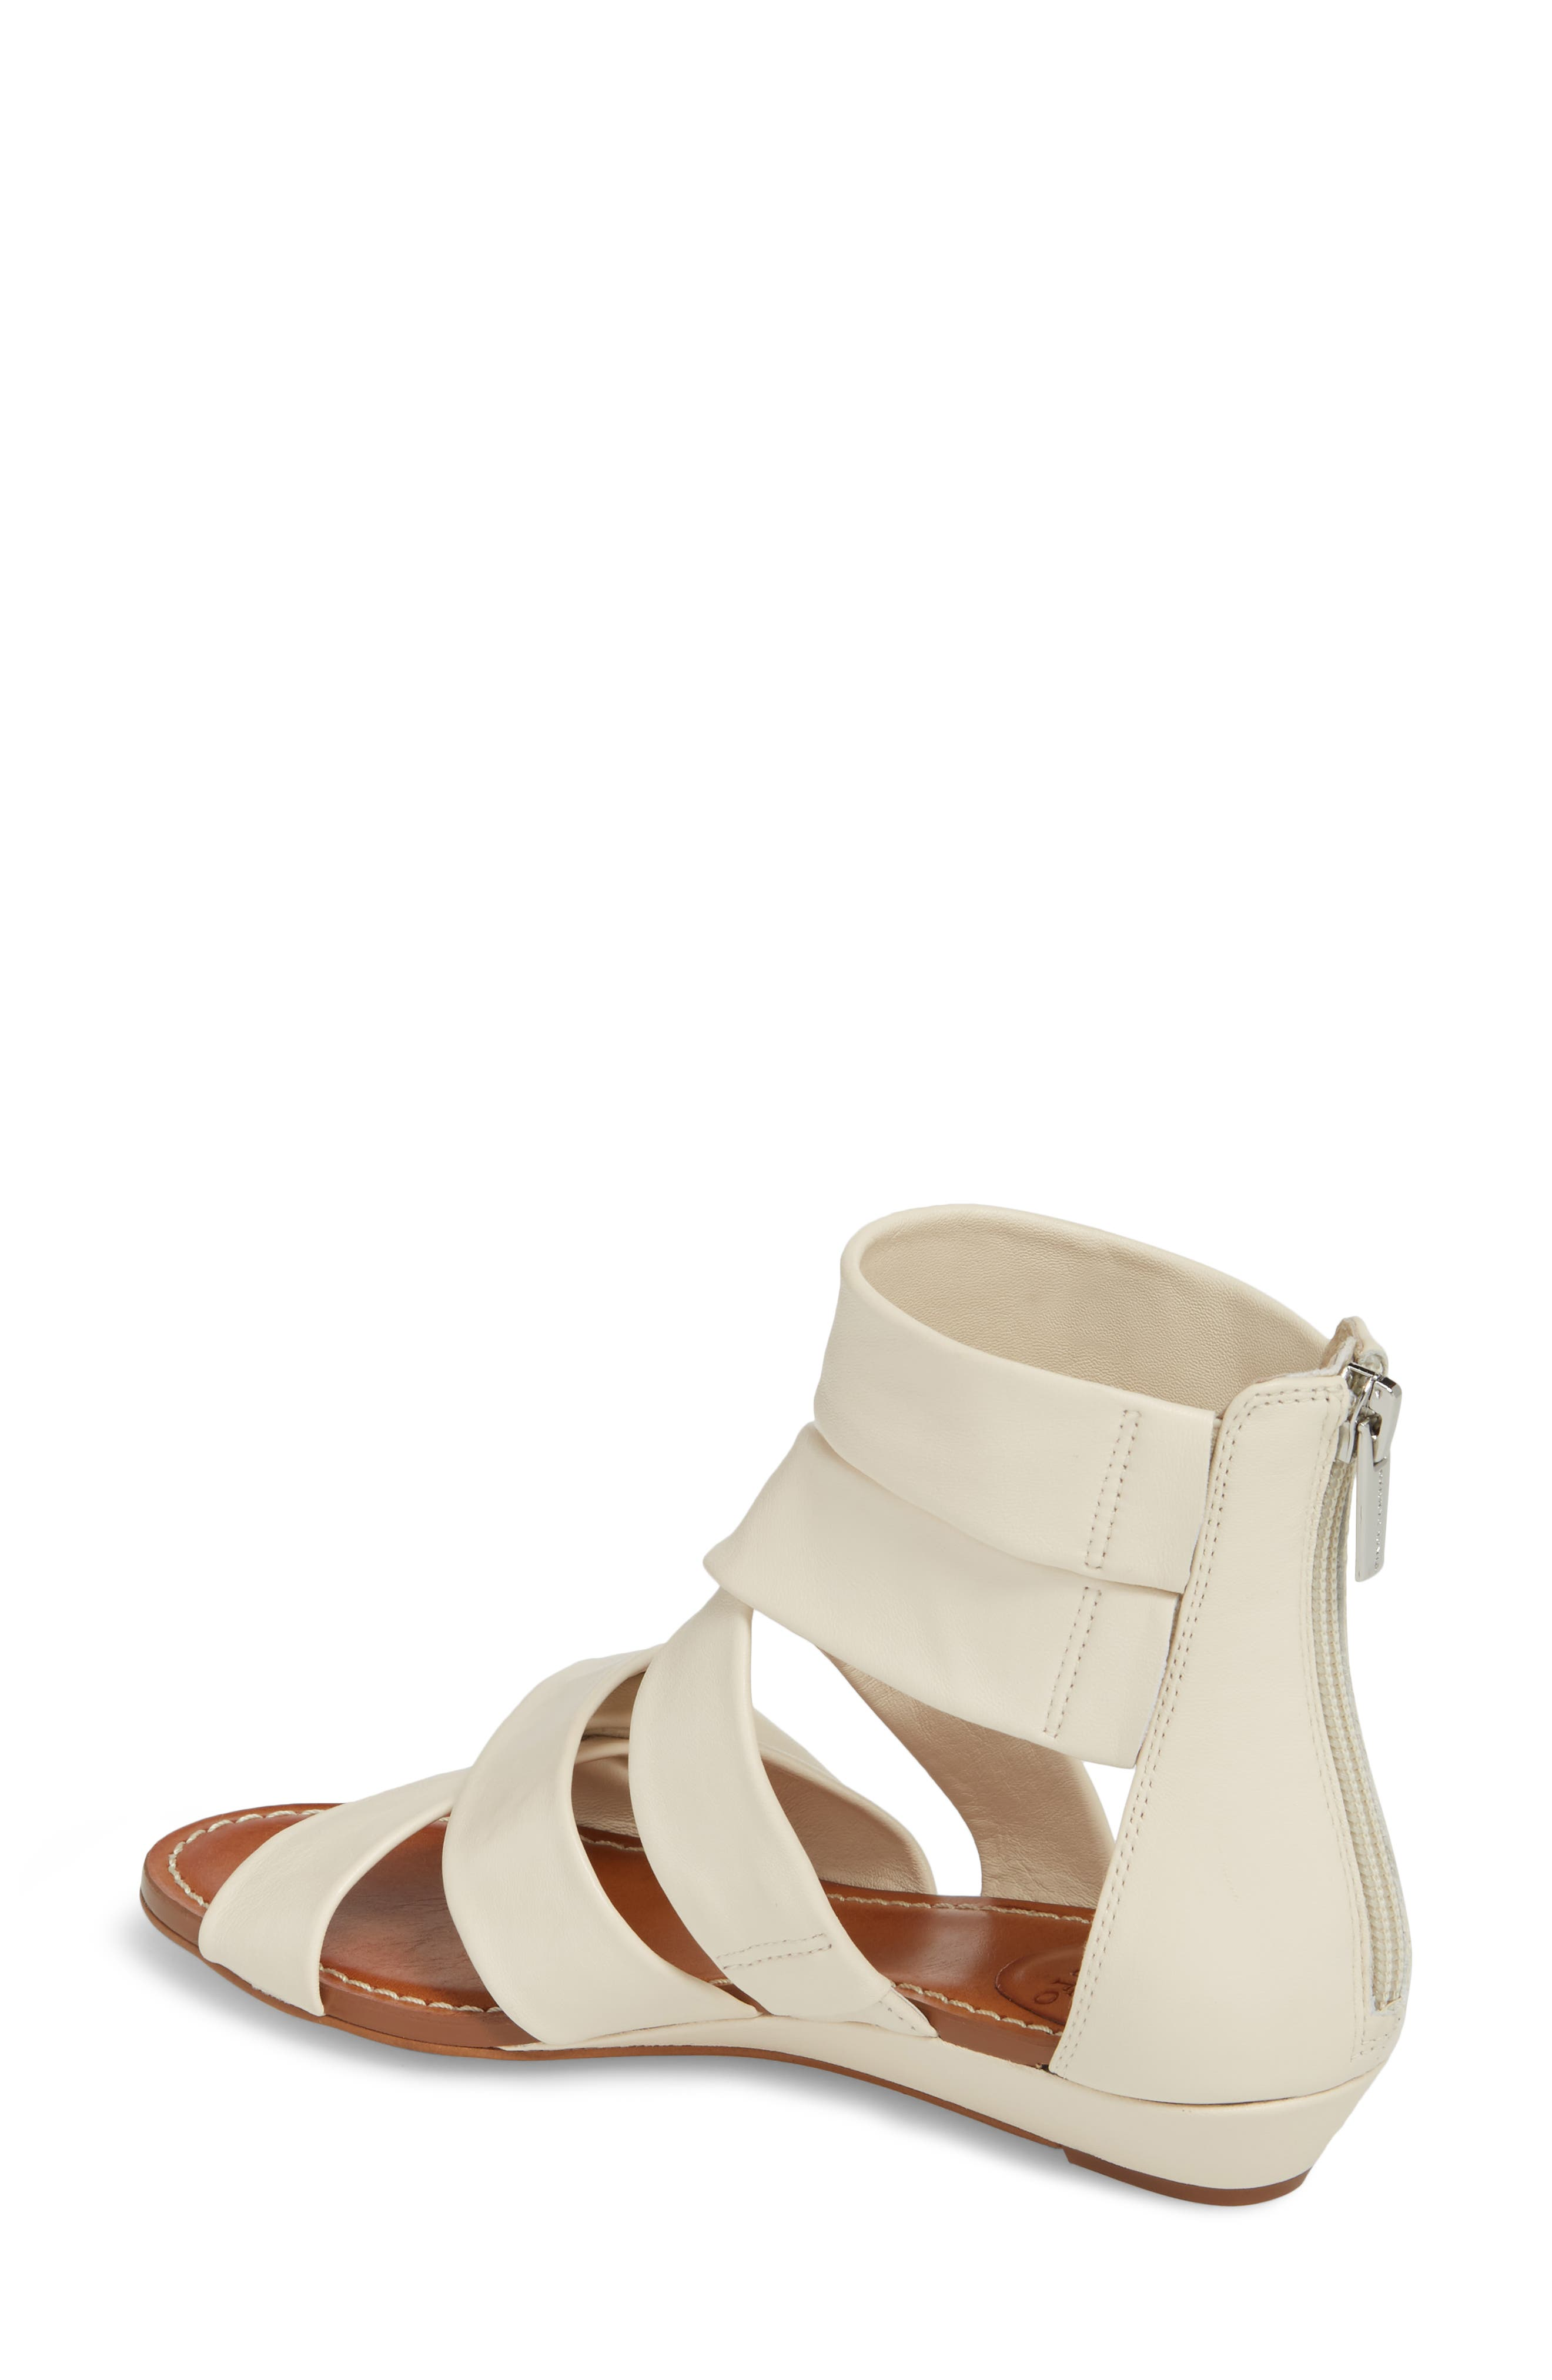 Seevina Low Wedge Sandal,                             Alternate thumbnail 2, color,                             Vanilla Leather